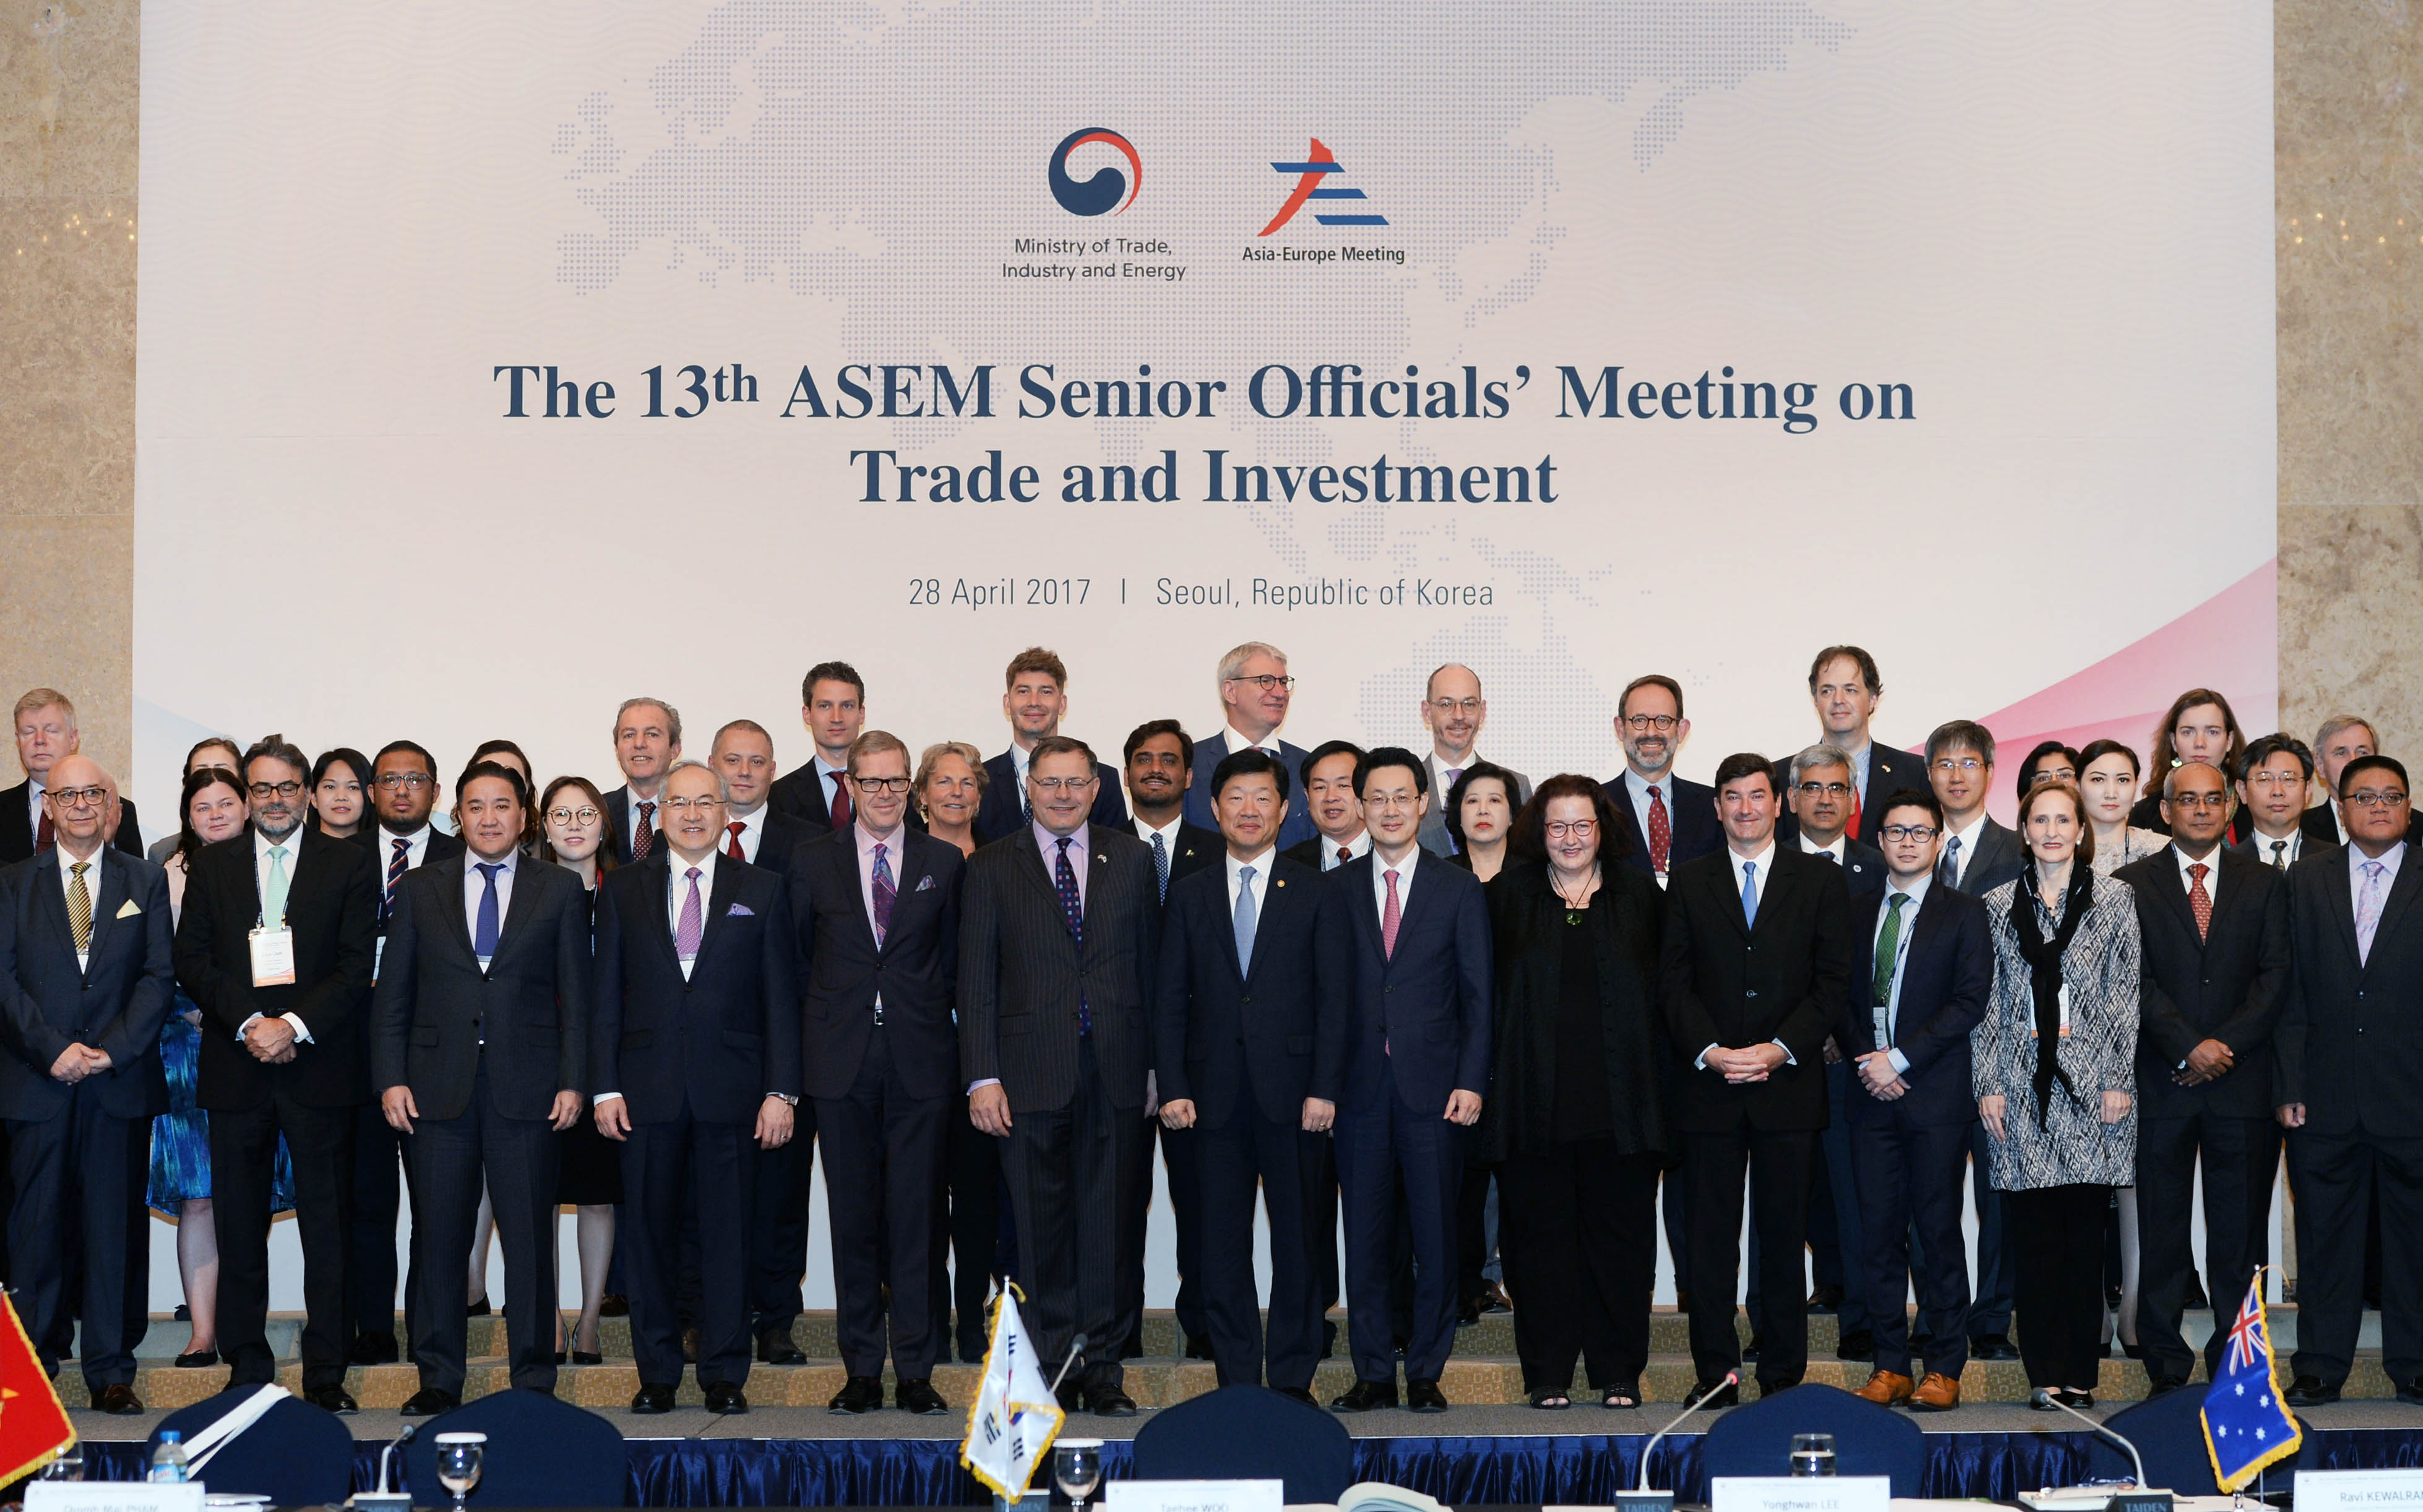 Ministry hosts 13th ASEM Senior Officials' Meeting on Trade and Investment in Seoul